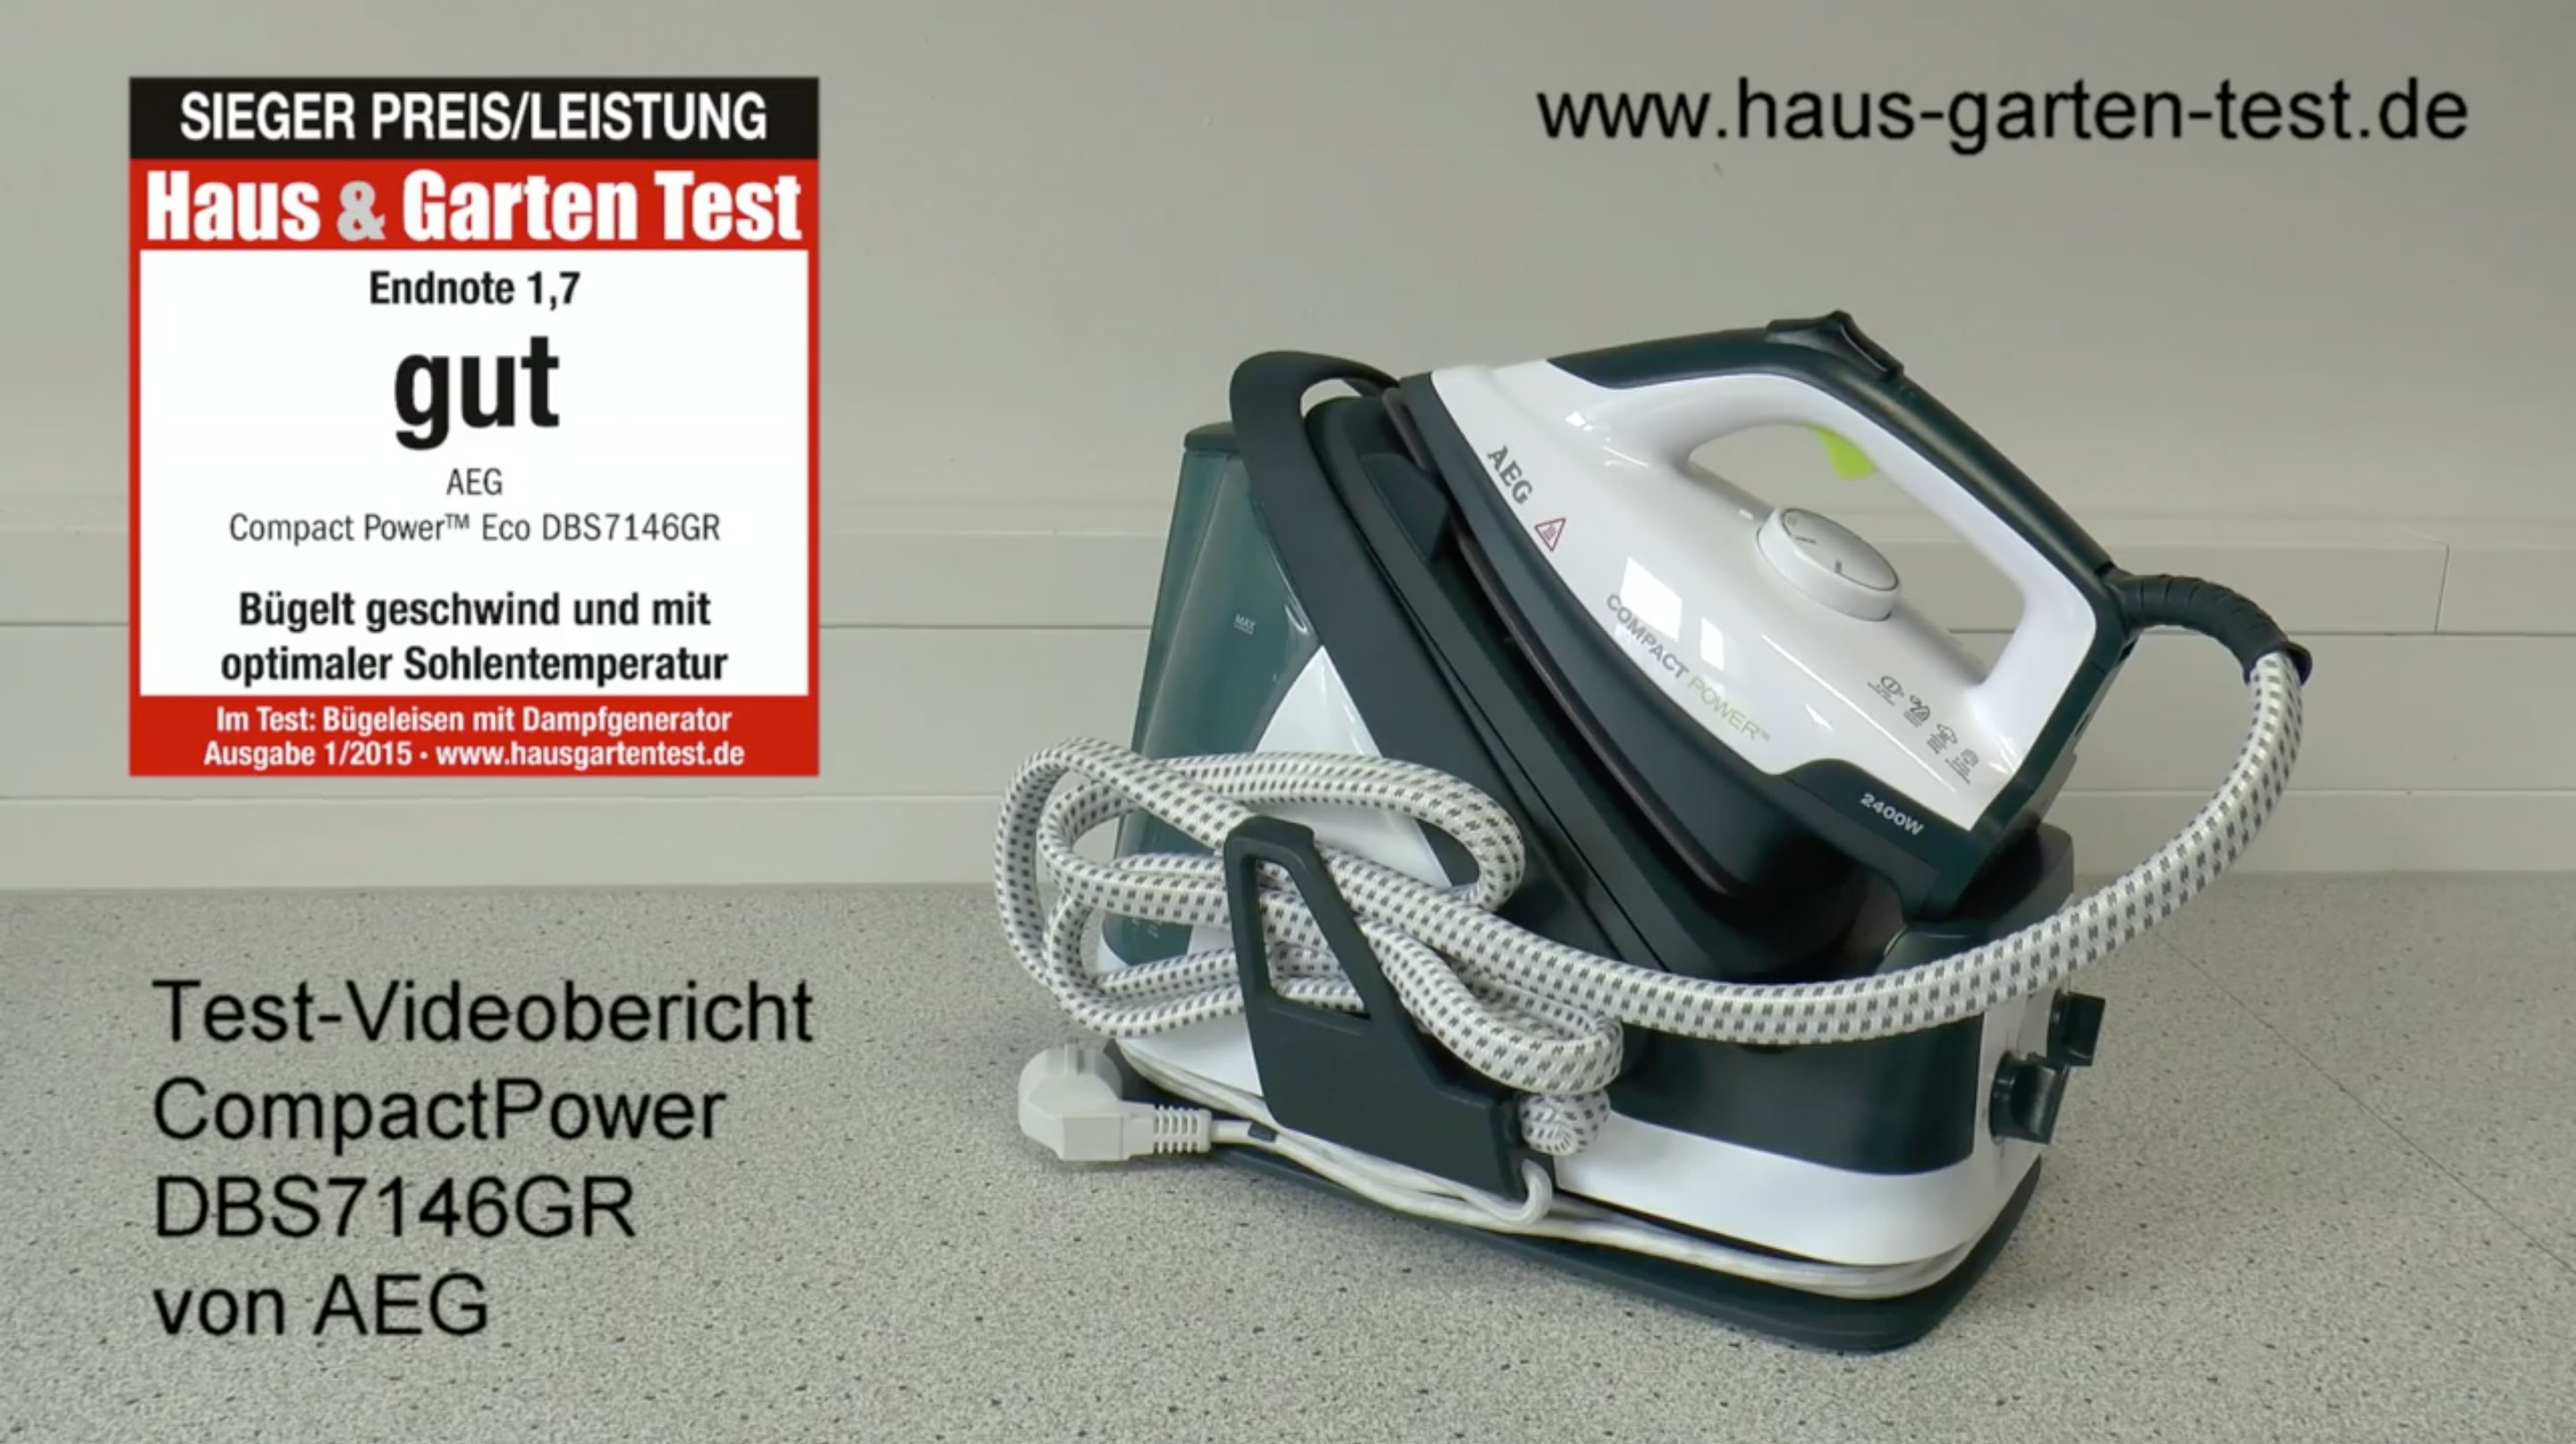 testvideo aeg compactpower dbs7146gr haus garten test. Black Bedroom Furniture Sets. Home Design Ideas